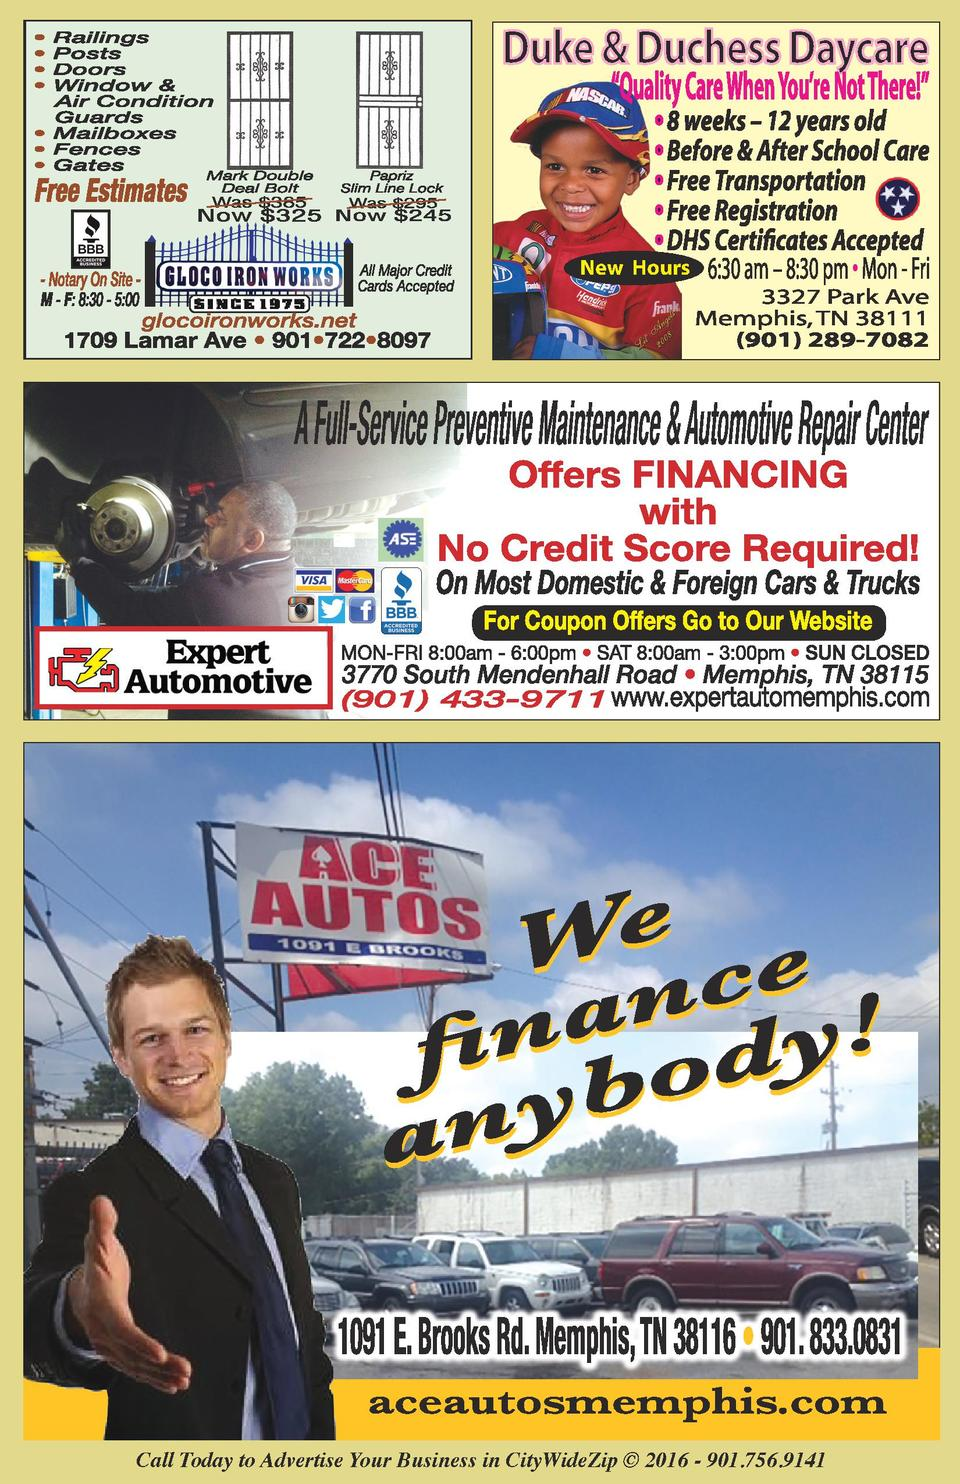 New Hours  Call Today to Advertise Your Business in CityWideZip    2016 - 901.756.9141